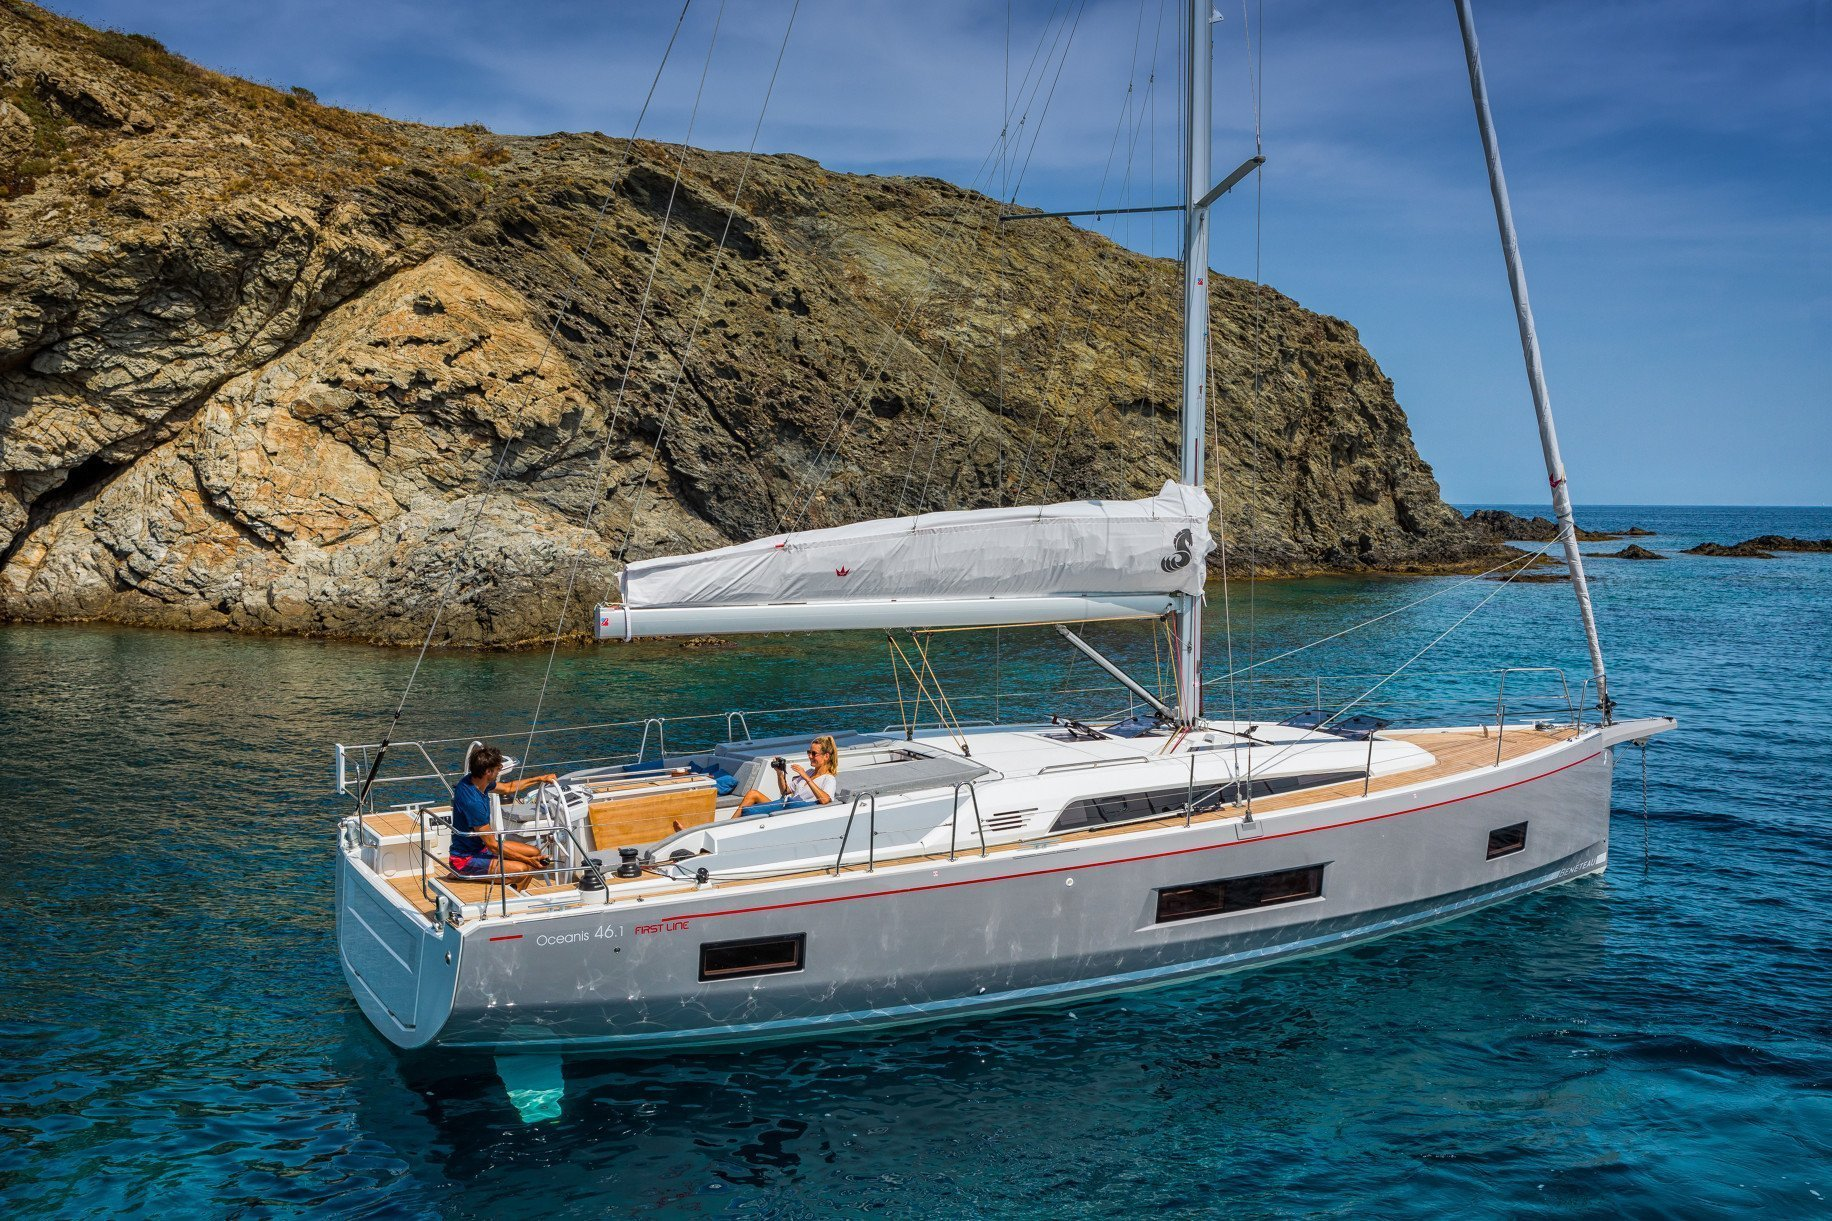 Sunsail Premier Plus Oceanis 46.1